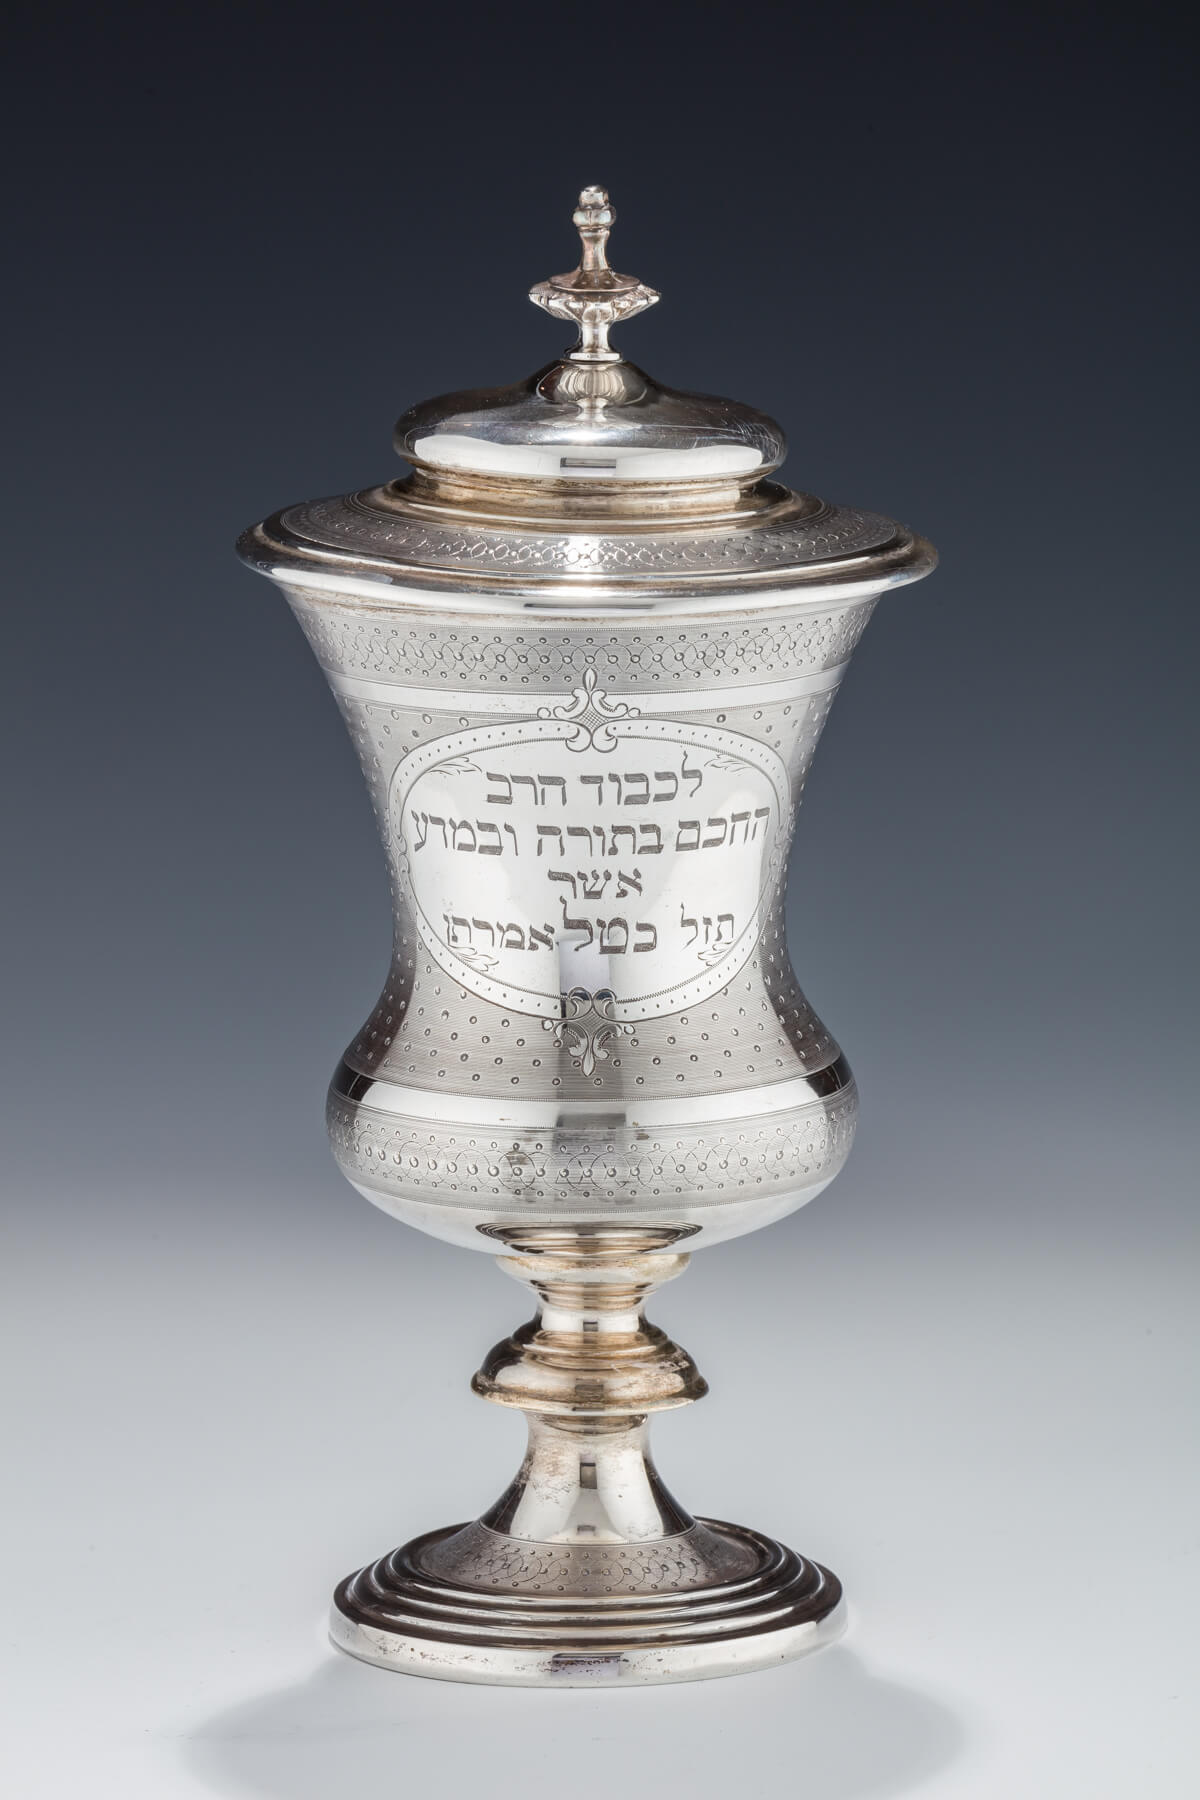 090. A Rare and Important Silver Kiddush Goblet